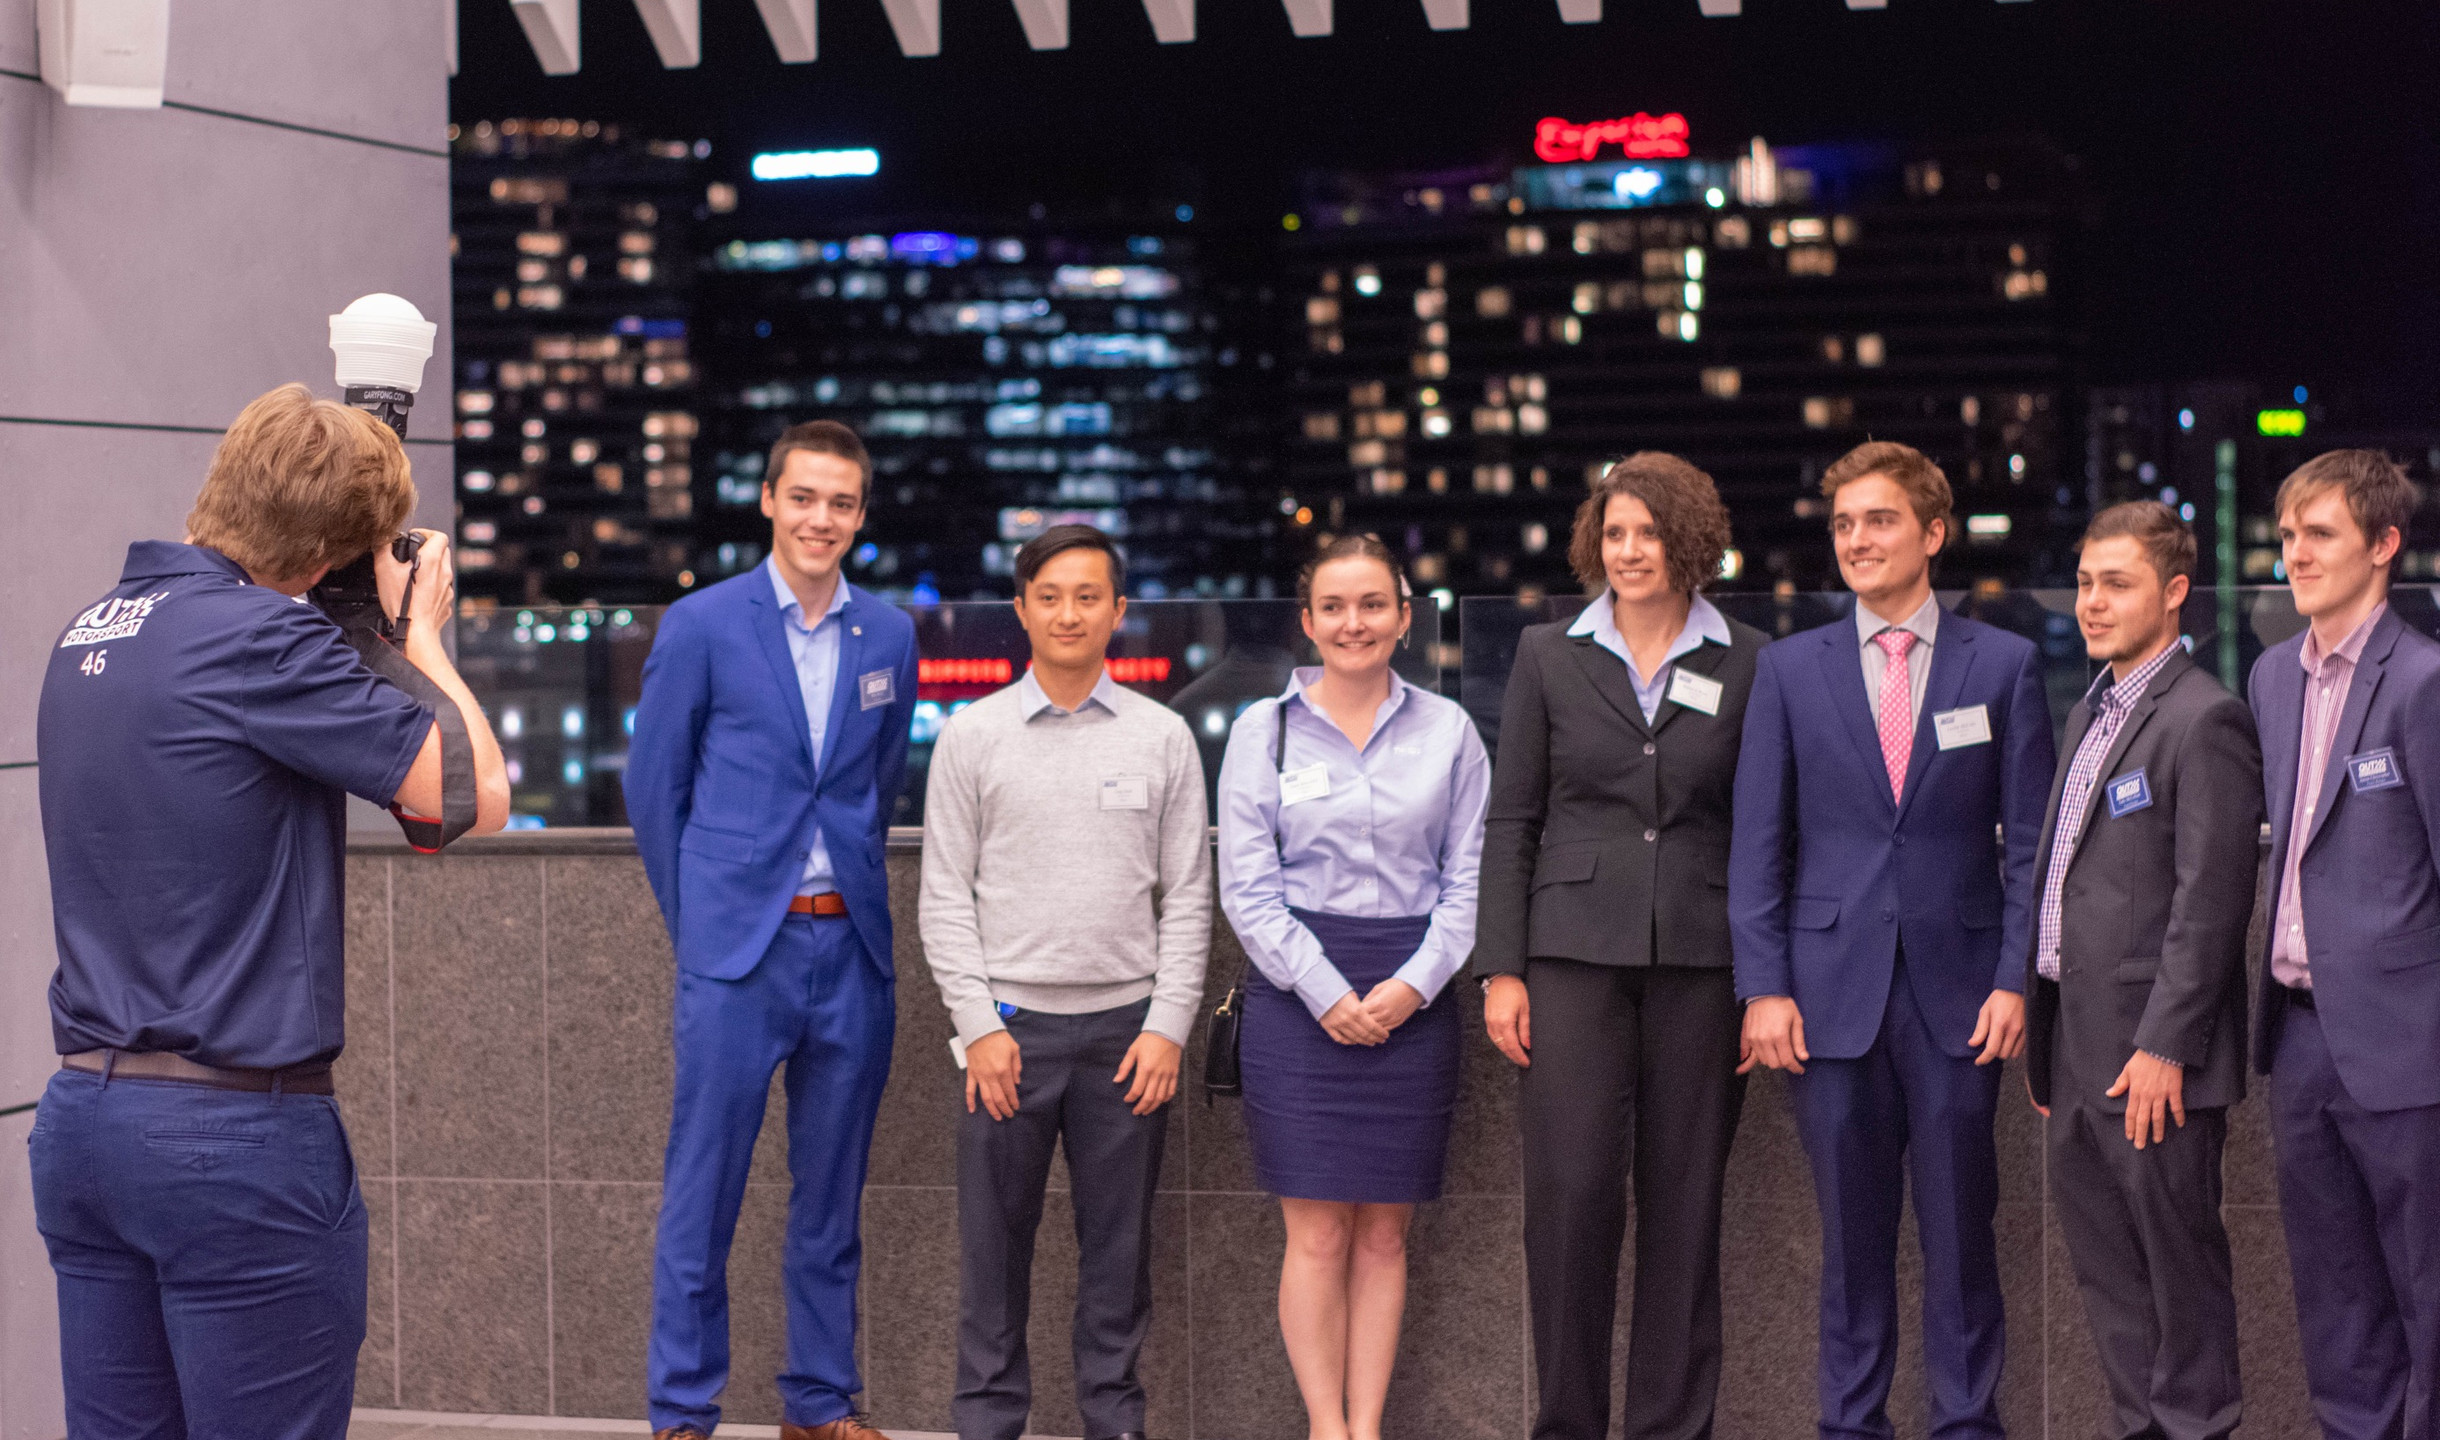 Our team members with Industry representatives. Photo: Michael Hanau